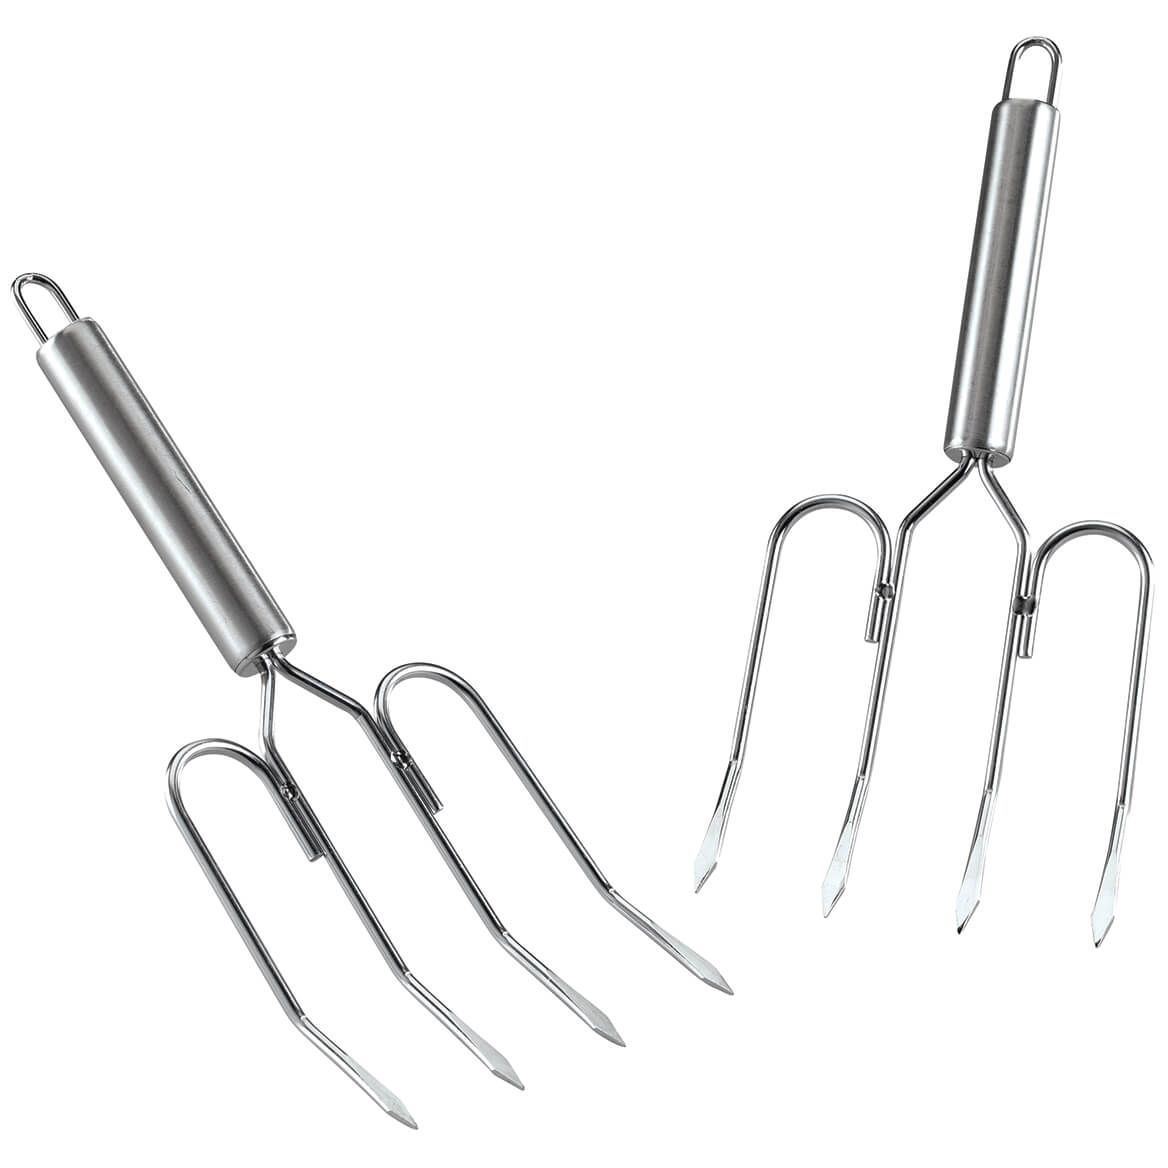 Stainless Steel Meat Lifter Forks, Set of 2-372385